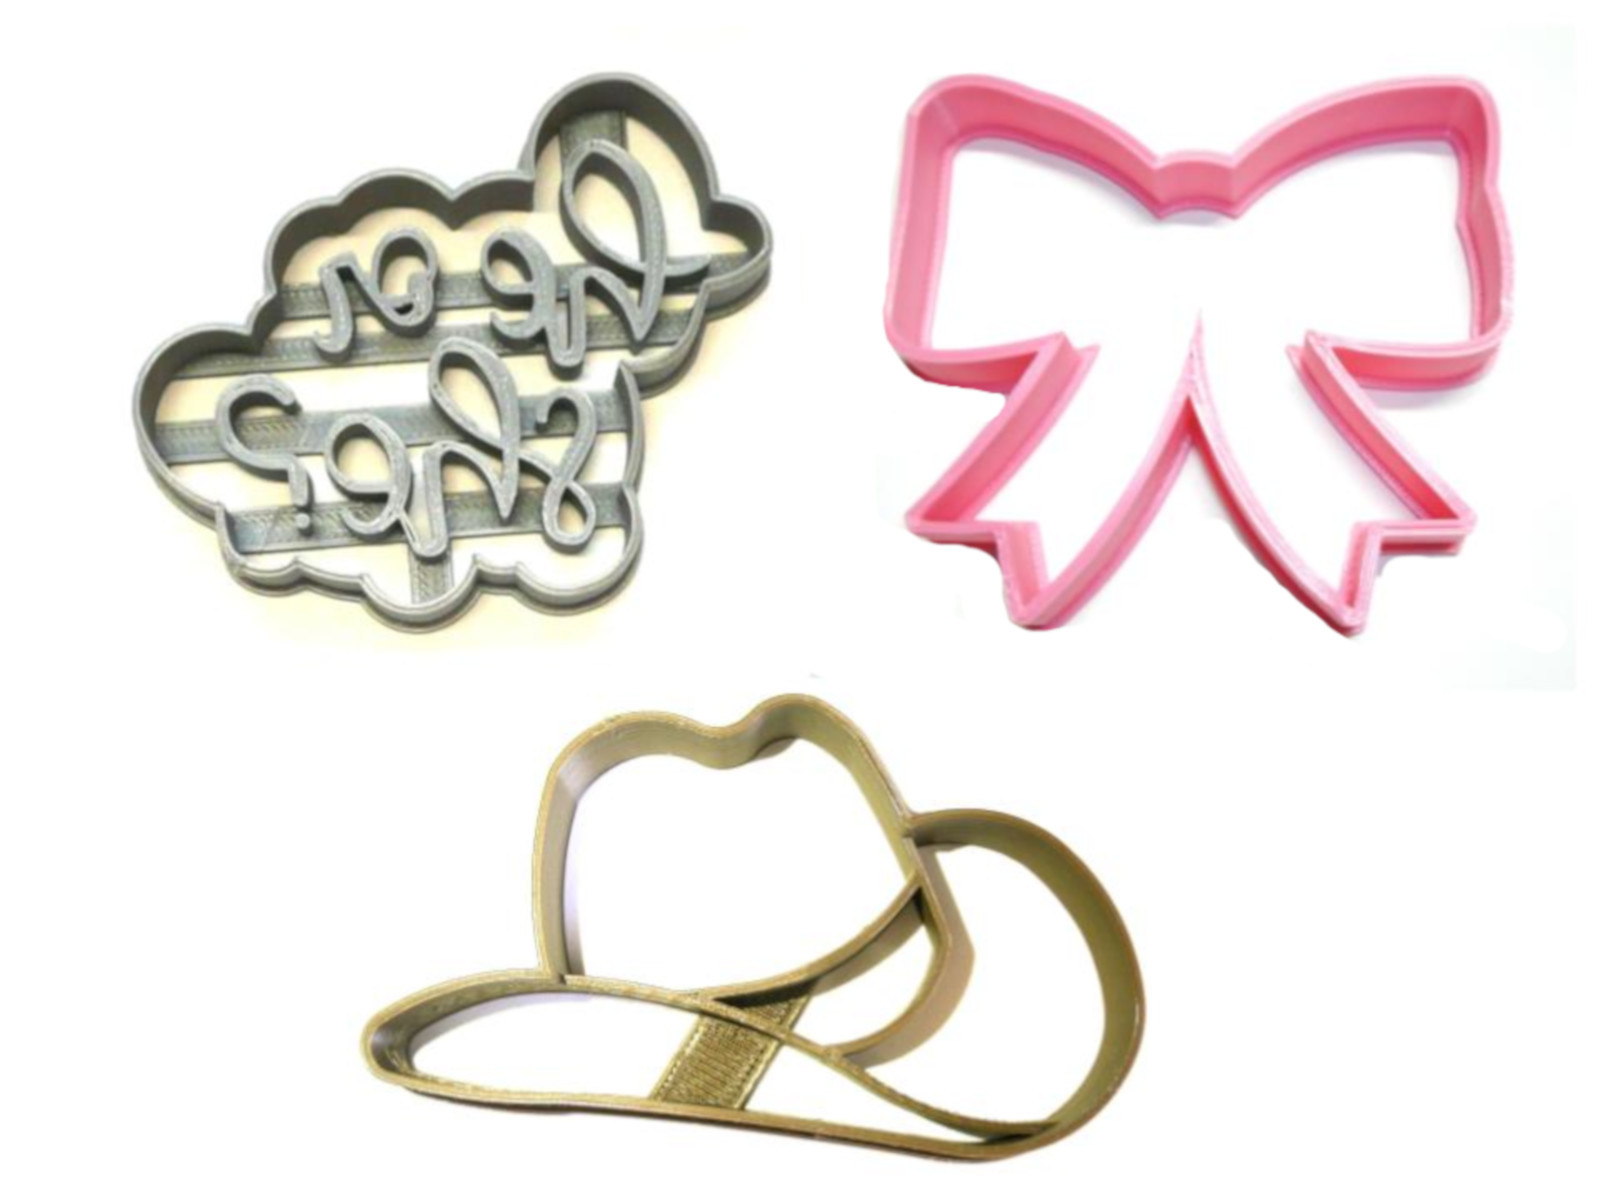 Primary image for Cowboy Or Cowgirl Gender Reveal Baby Shower Set Of 3 Cookie Cutters USA PR1202